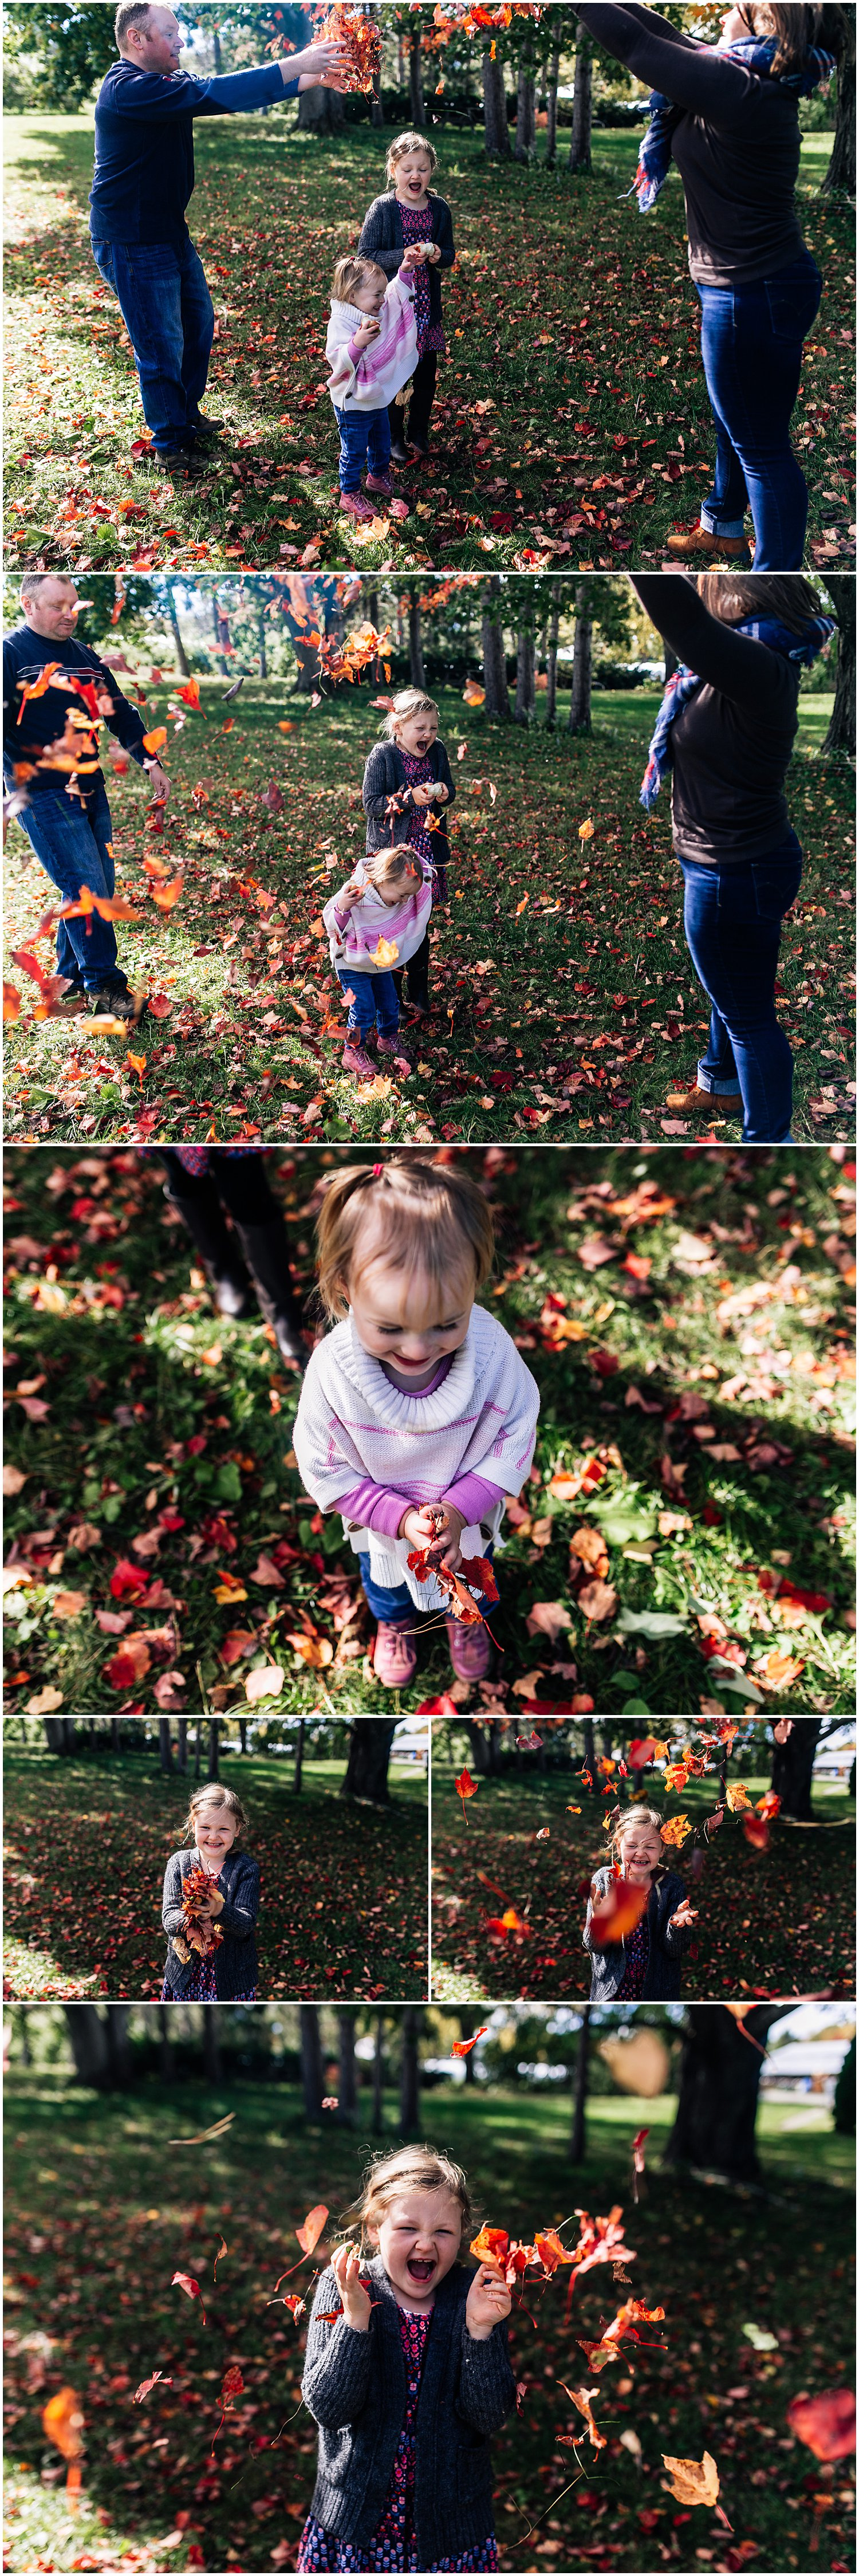 Throwing leaves together